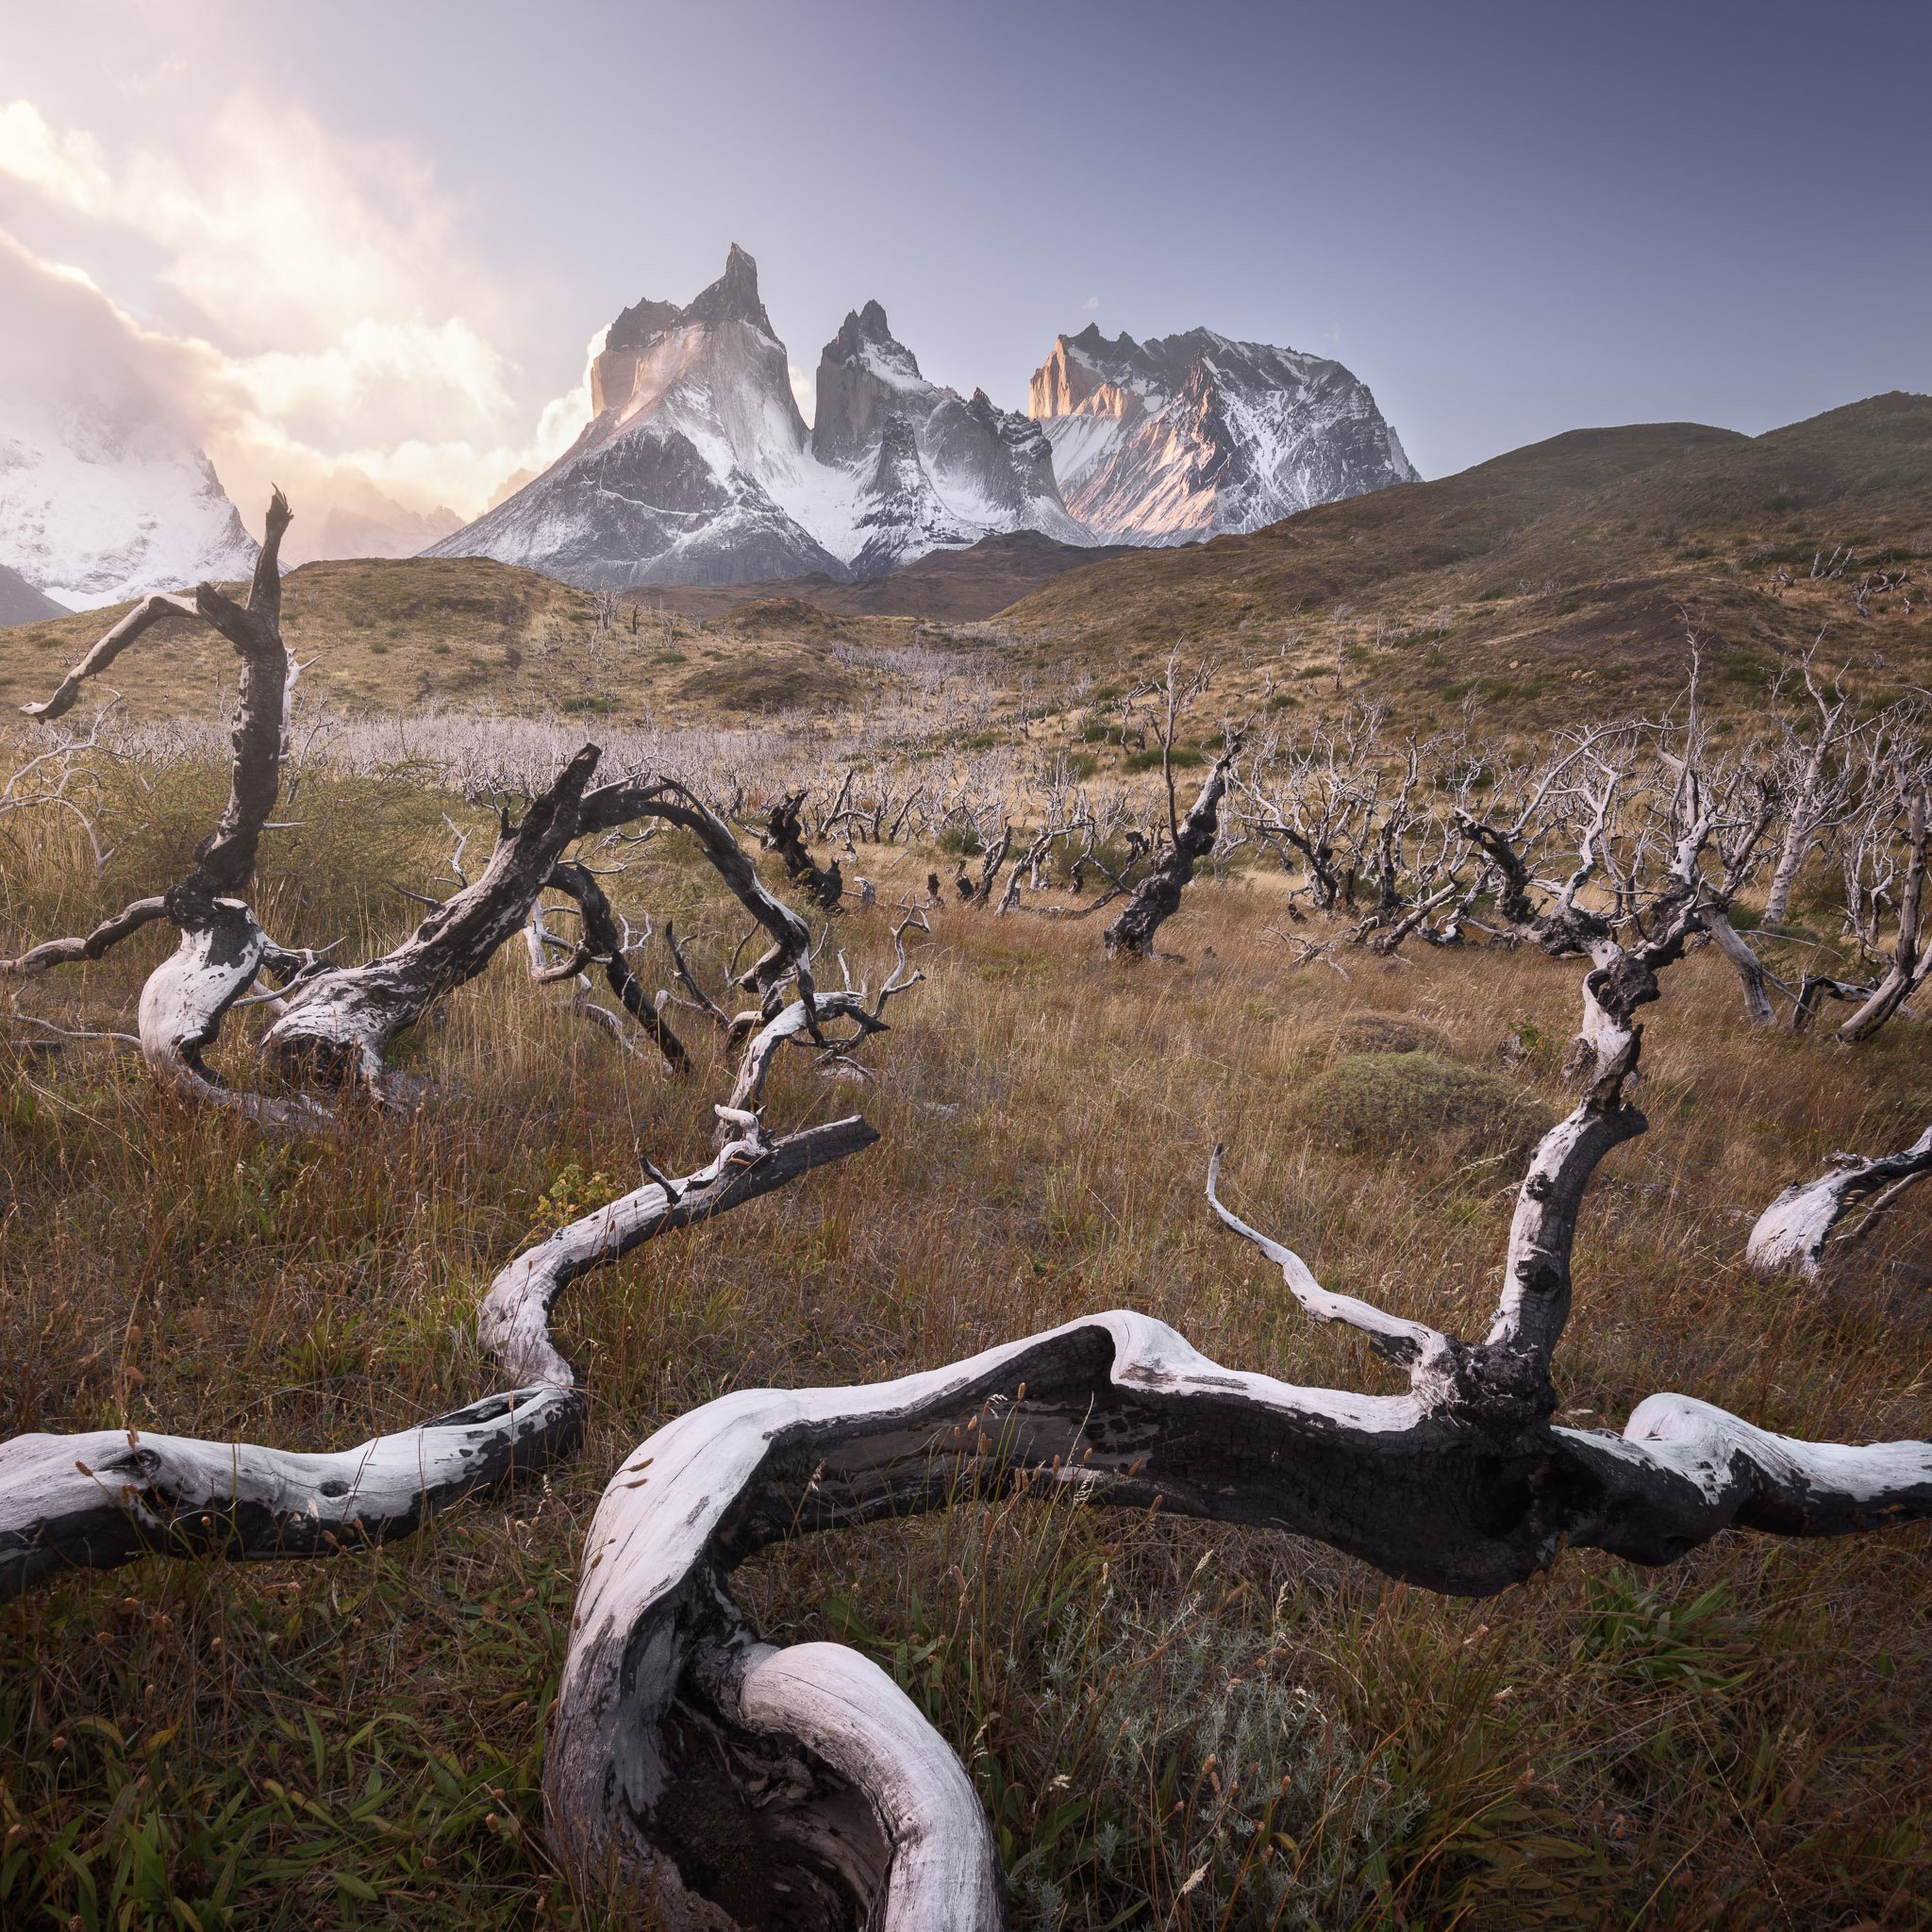 america, andes, beautiful, black, blue, branch, chile, clouds, cuernos, curved, dark, dead, del, dry, forest, glacier, grass, hiking, hill, ice, landmark, landscape, light, log, morning, moss, mountain, national, nature, outdoor, paine, park, patagonia, p, anshar